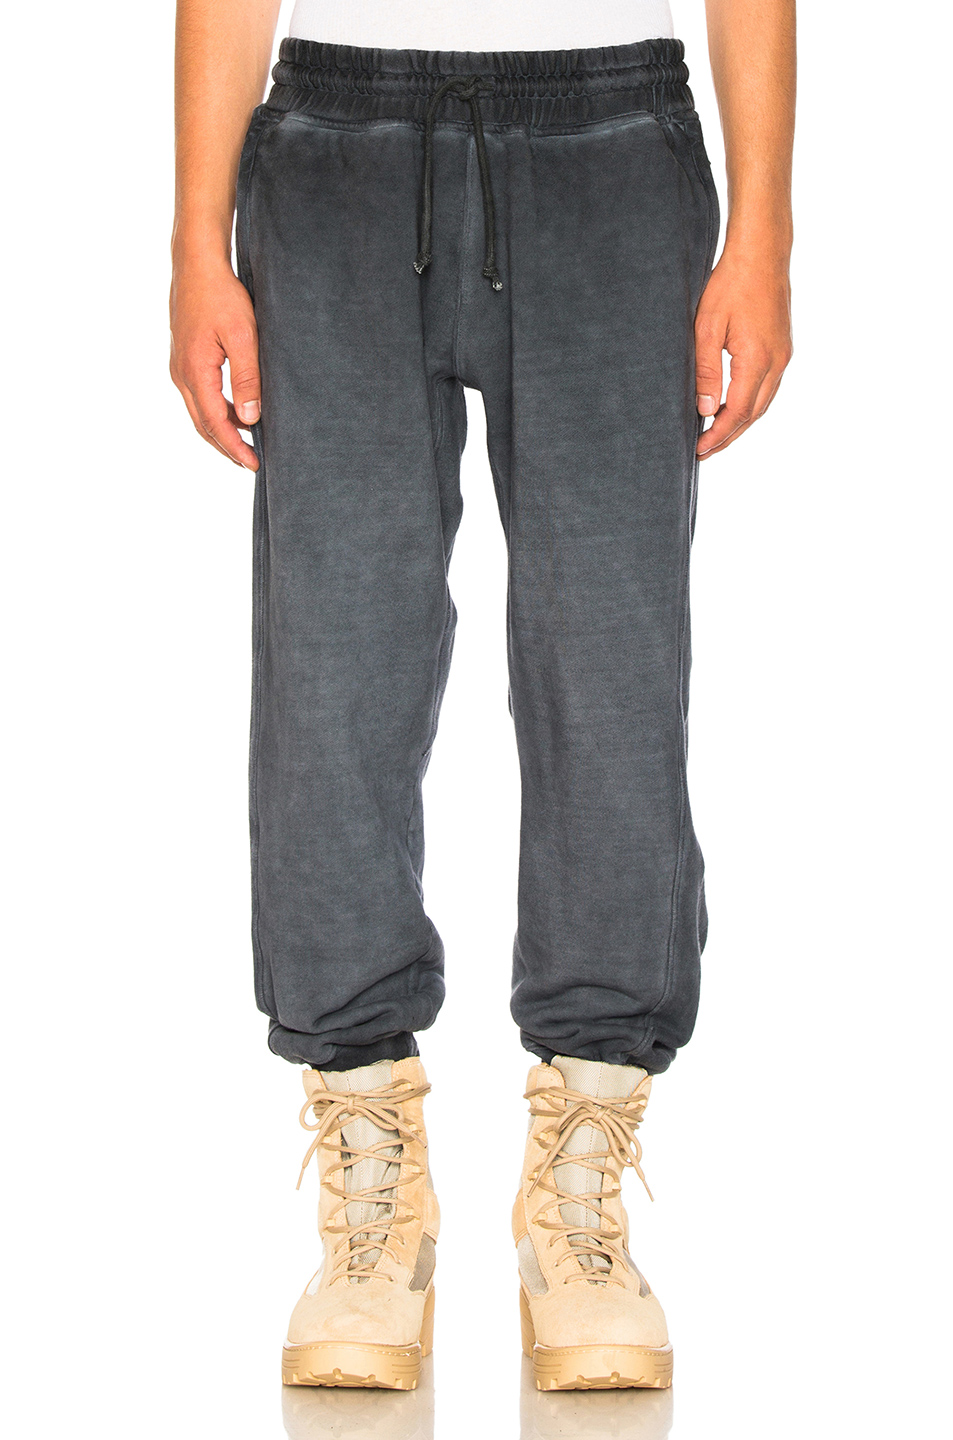 YEEZY Season 4 Paneled Sweatpants in Gray